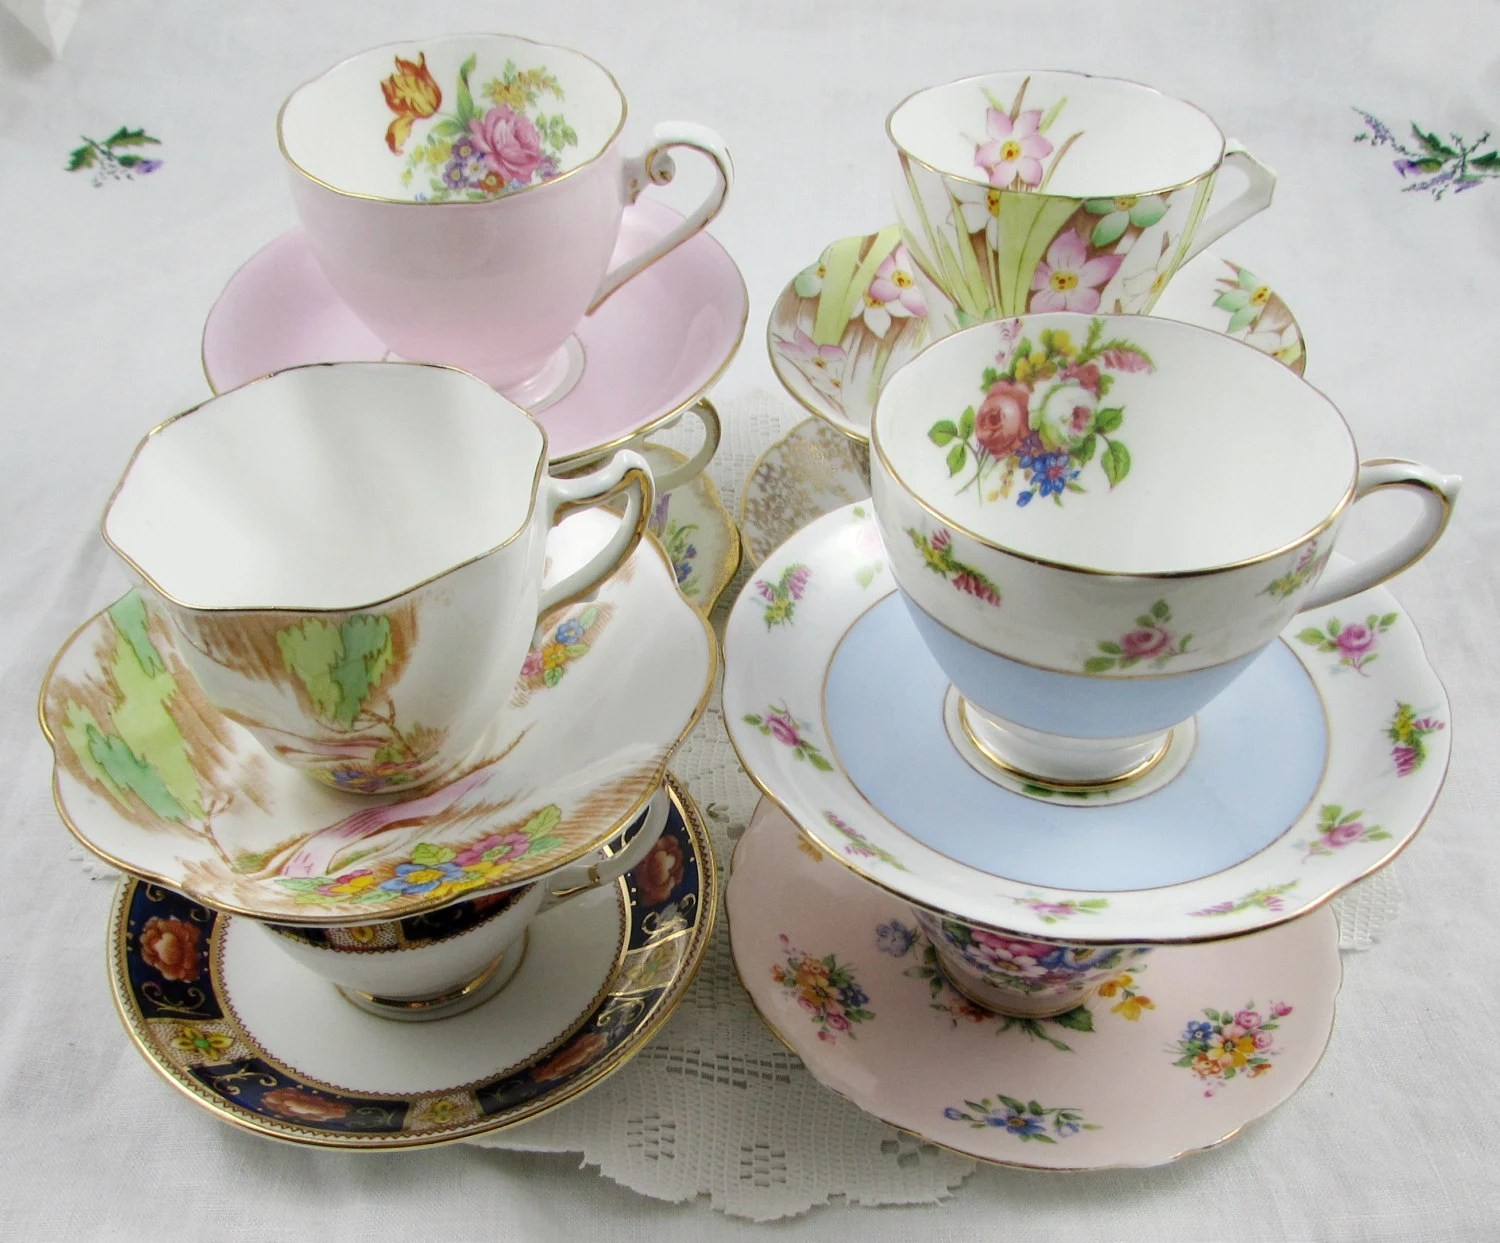 60 Vintage Tea Cups and Saucers for Your Wedding or by